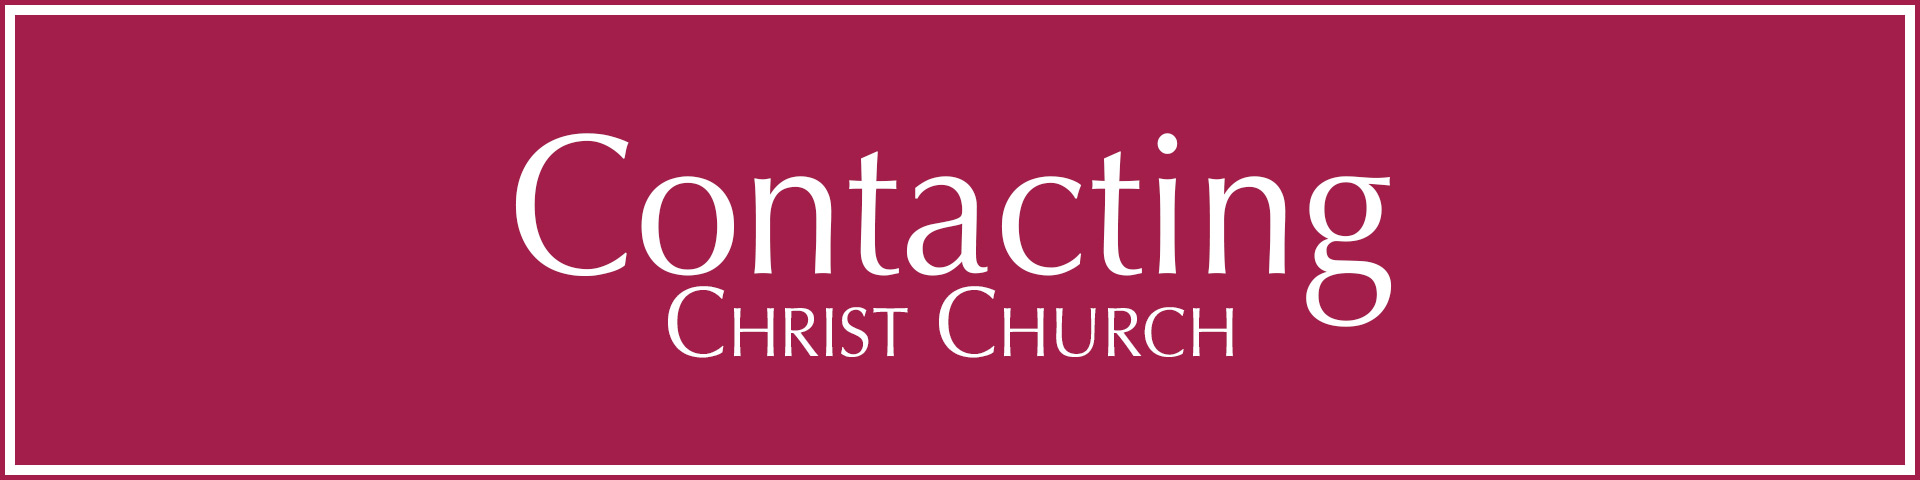 Contacting Christ Church